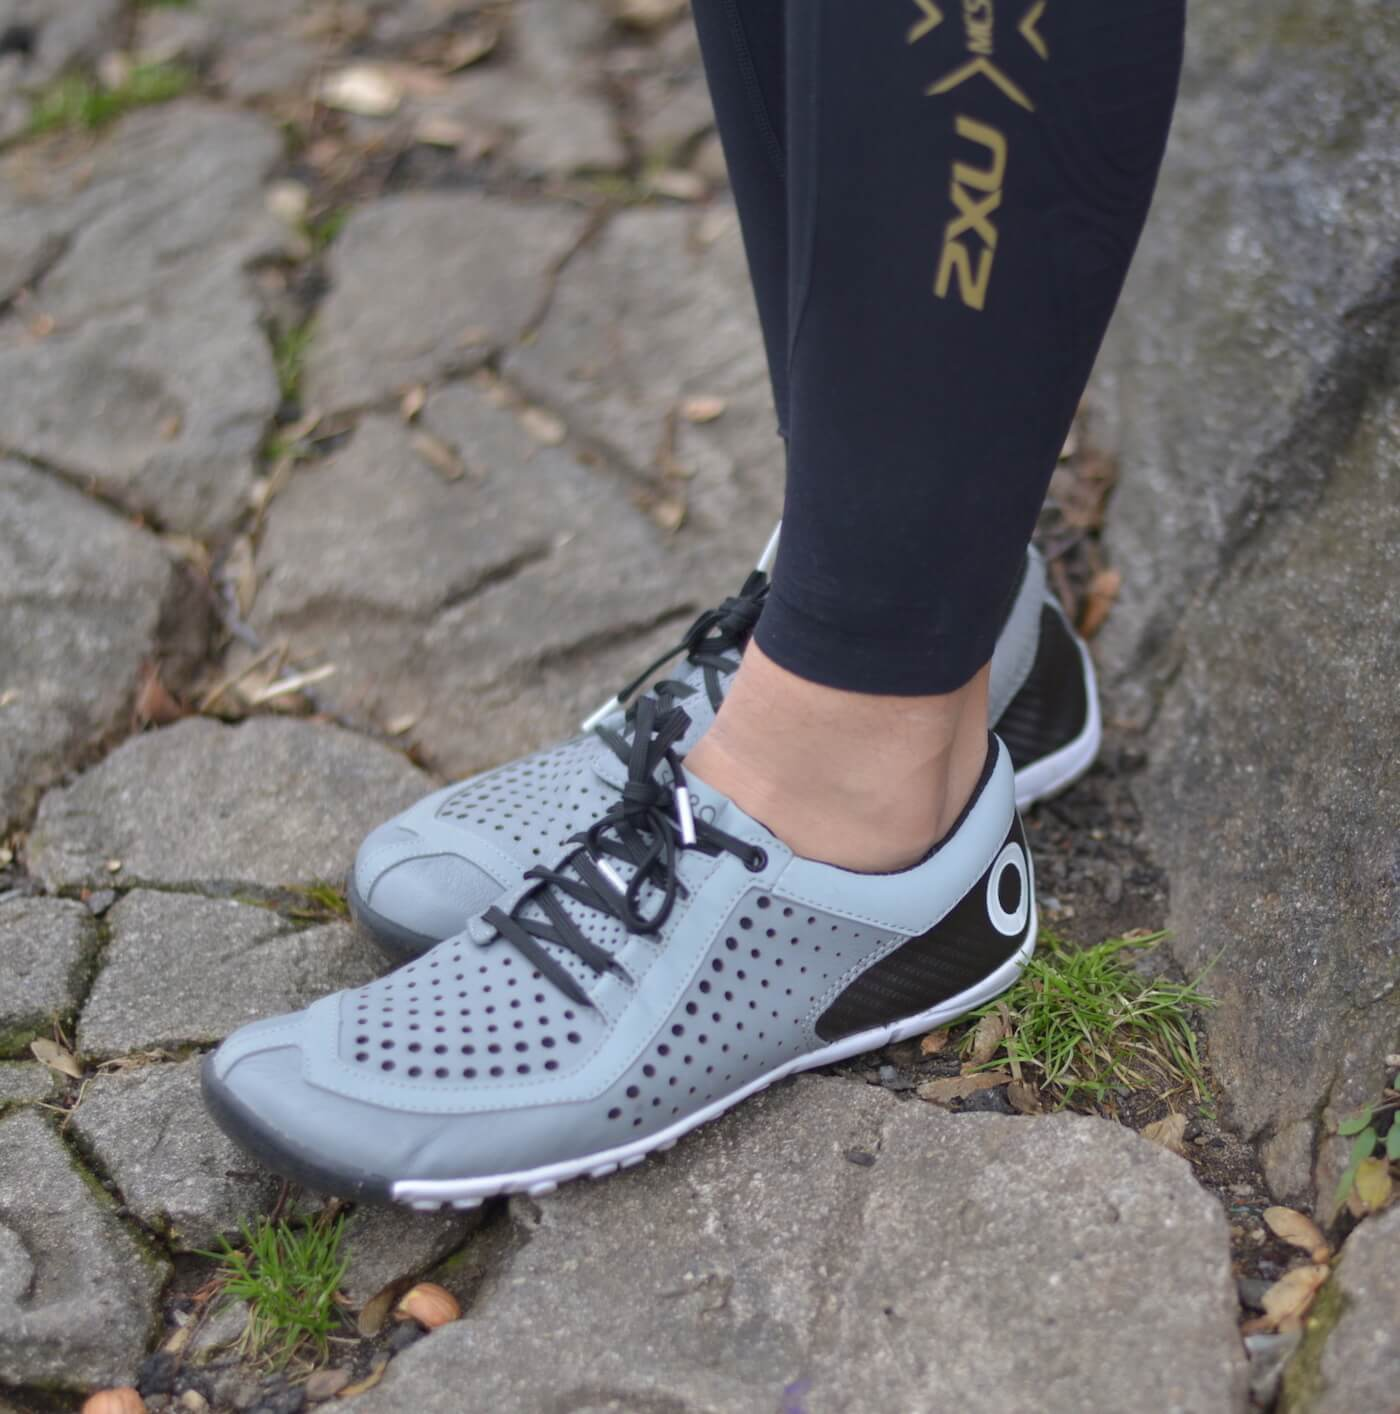 Wearing the Skora Core shoes with 2XU Thermal Compression Tights.